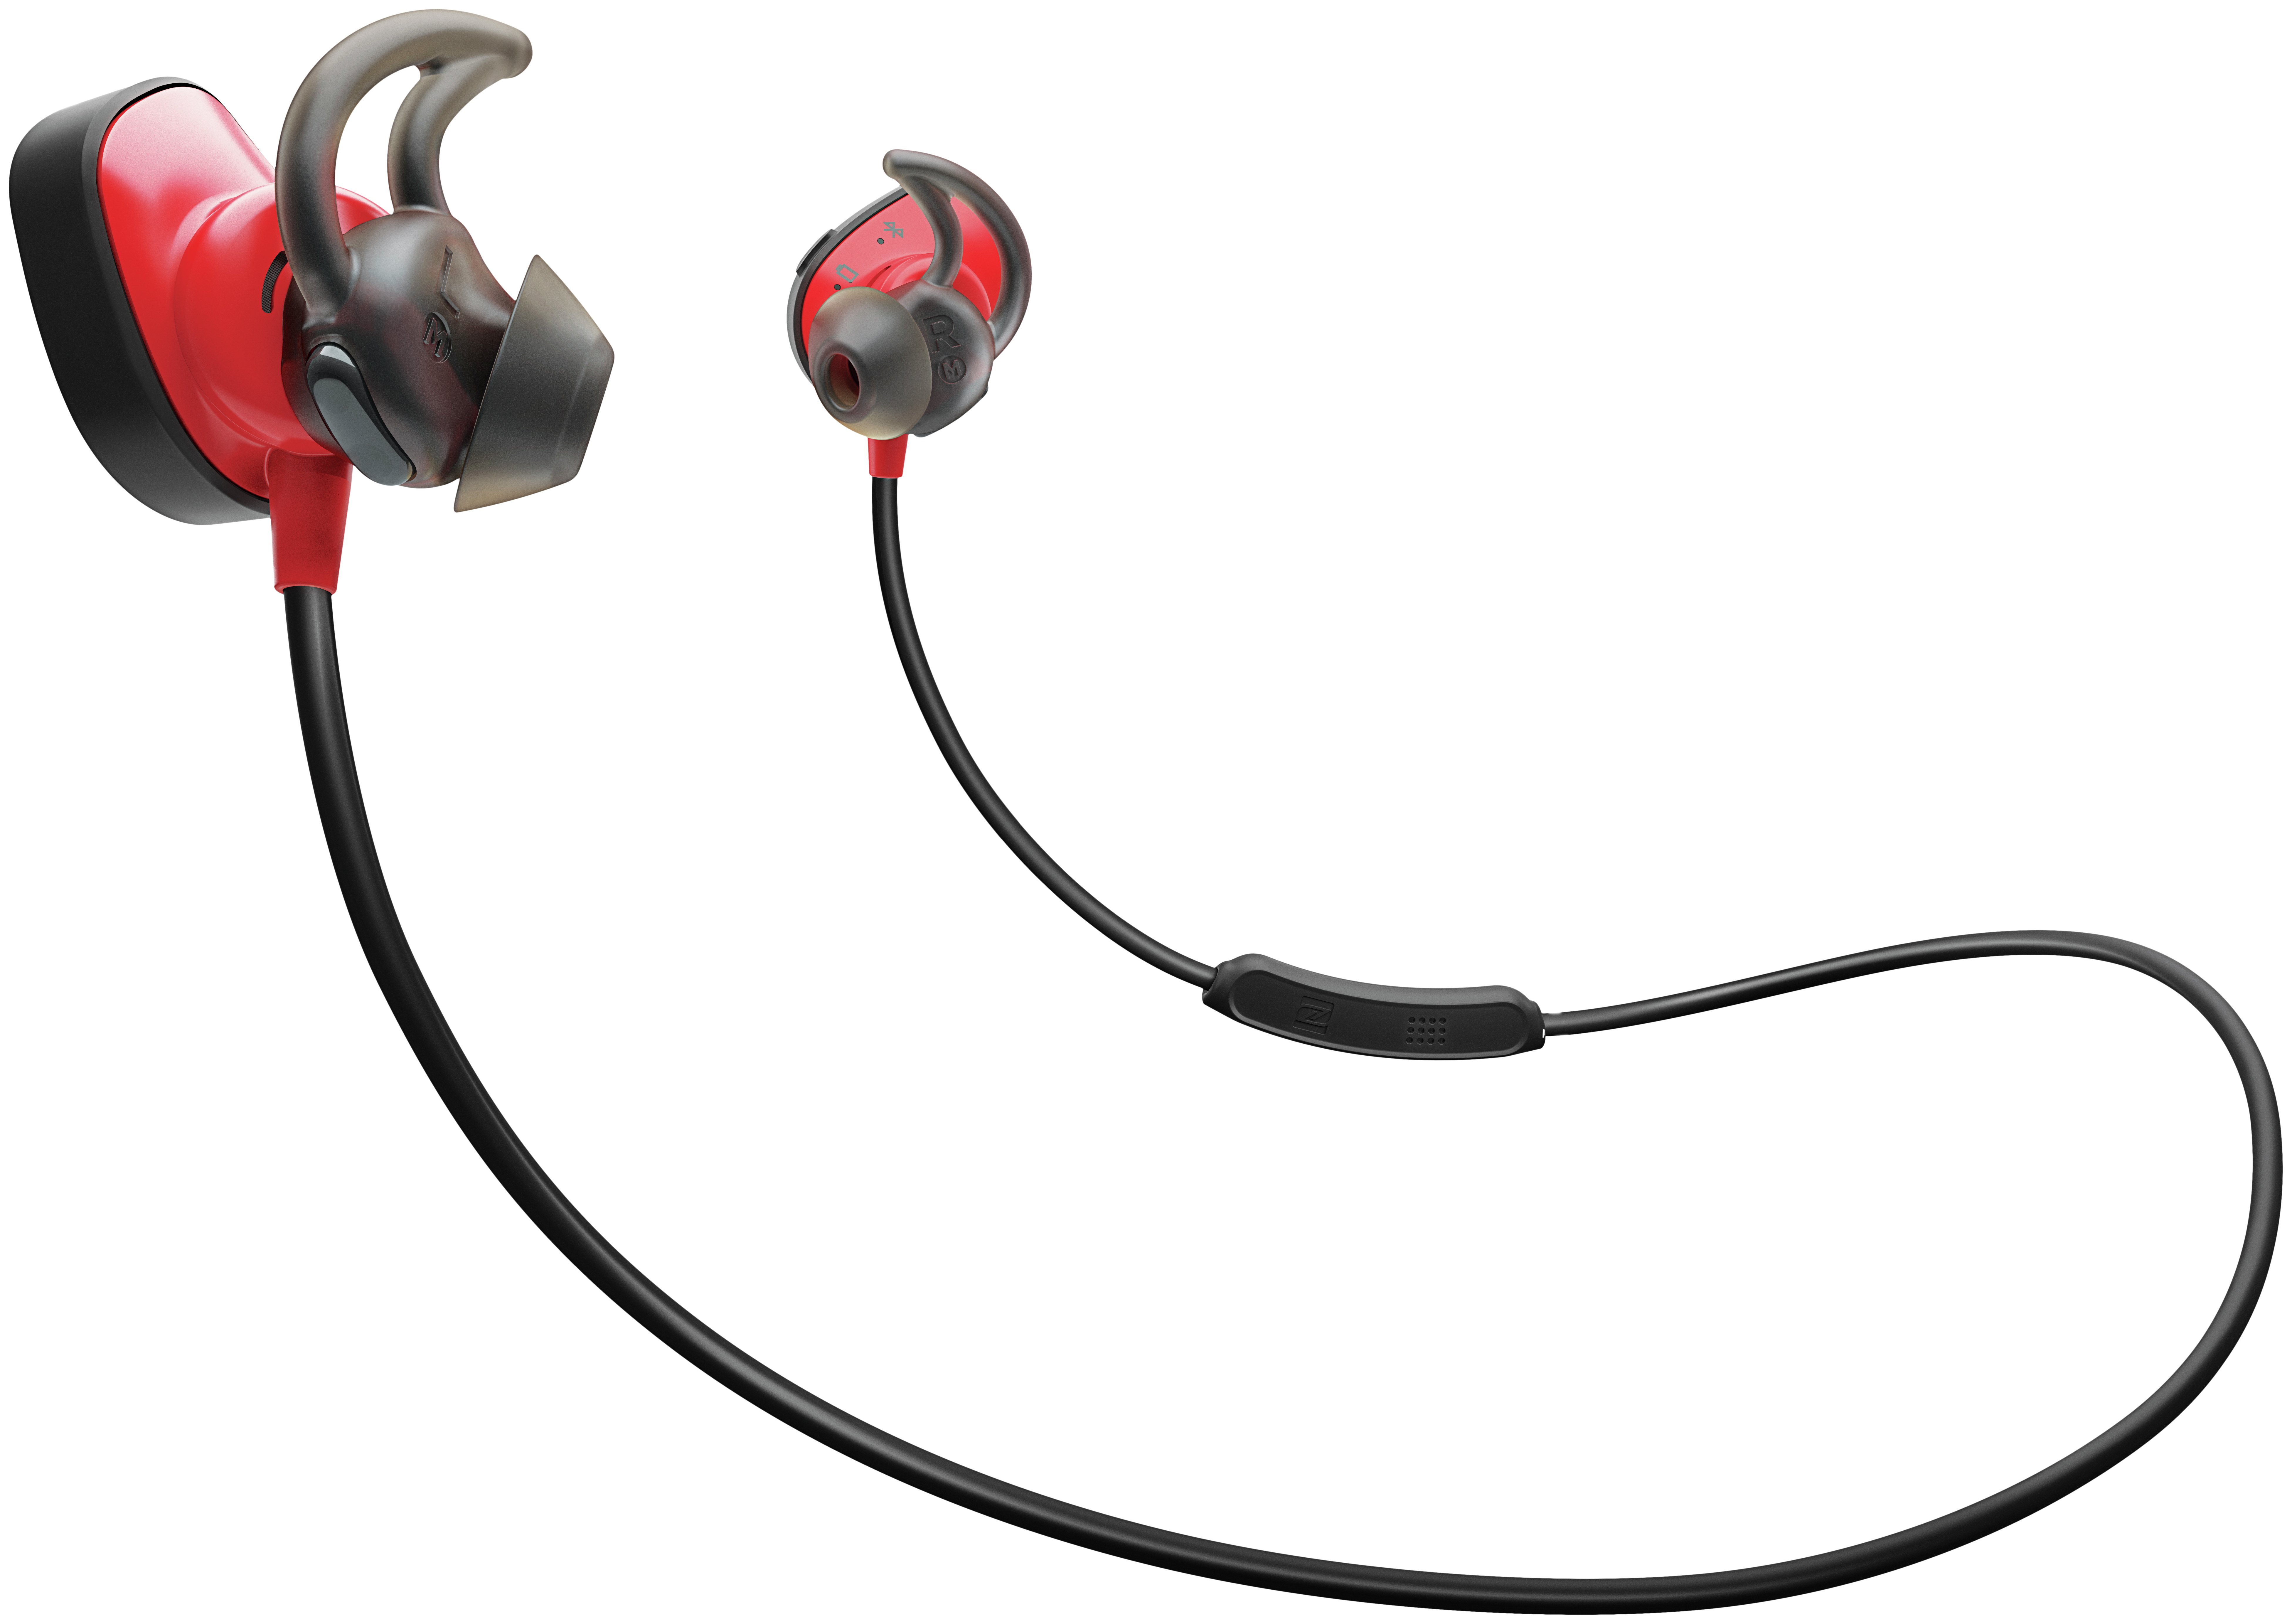 Bose Soundsport Pulse In-Ear Wireless Headphones - Red